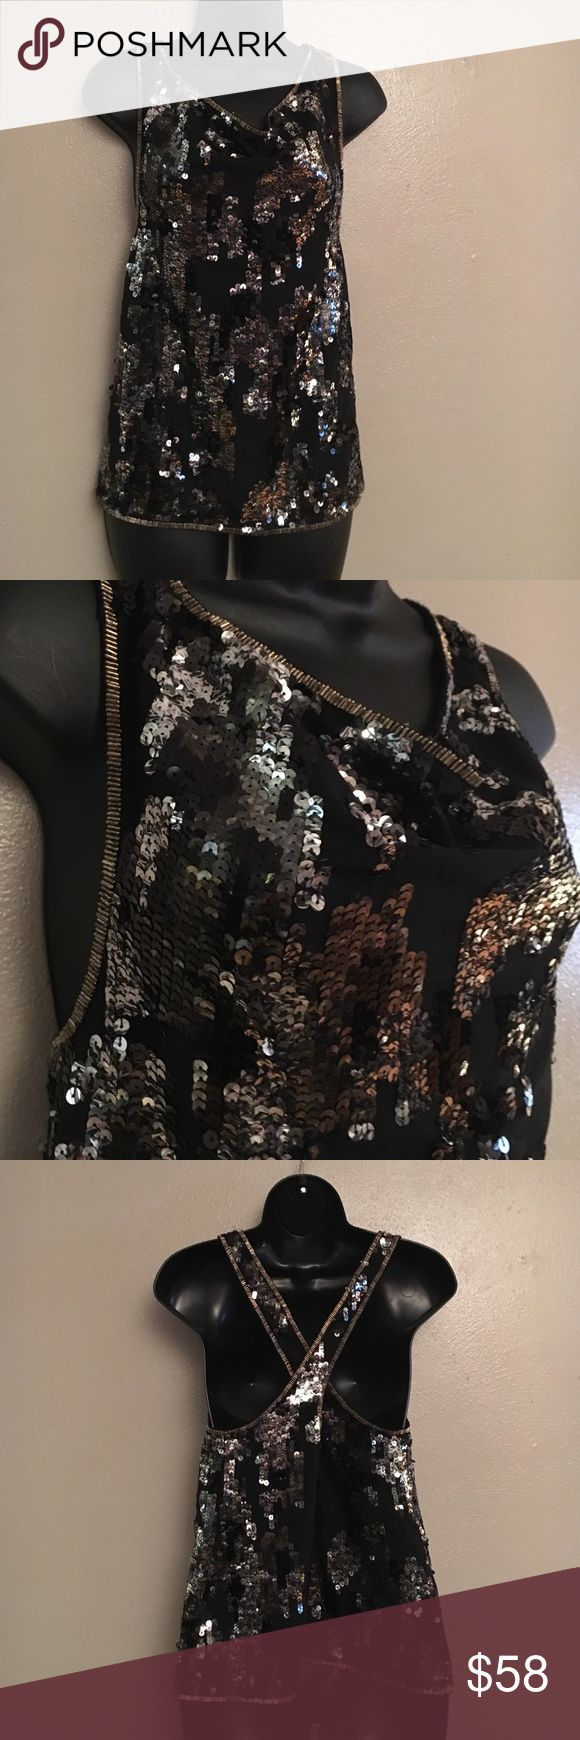 Diesel sequins shirt Diesel sequins shirt-dress to impress. Beautiful sleeveless shirt Diesel Tops Blouses